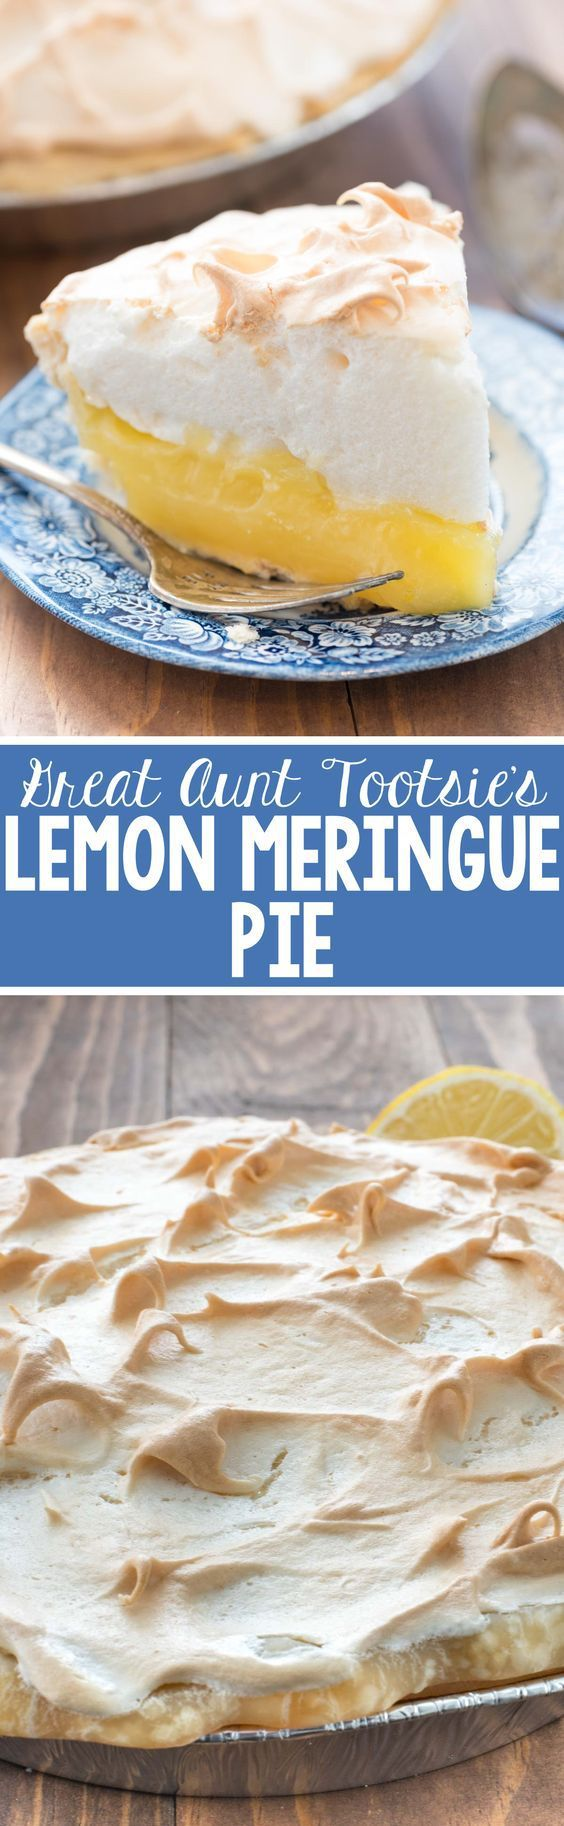 Great Aunt Tootsie's Lemon Meringue Pie Dessert Recipe via Crazy for Crust - this recipe is from my great aunt and it is a family favorite! The lemon is sweet and tart and the pie is perfect lemon lovers! Favorite EASY Pies Recipes - Brunch Dessert No-Bake + Bake Musts